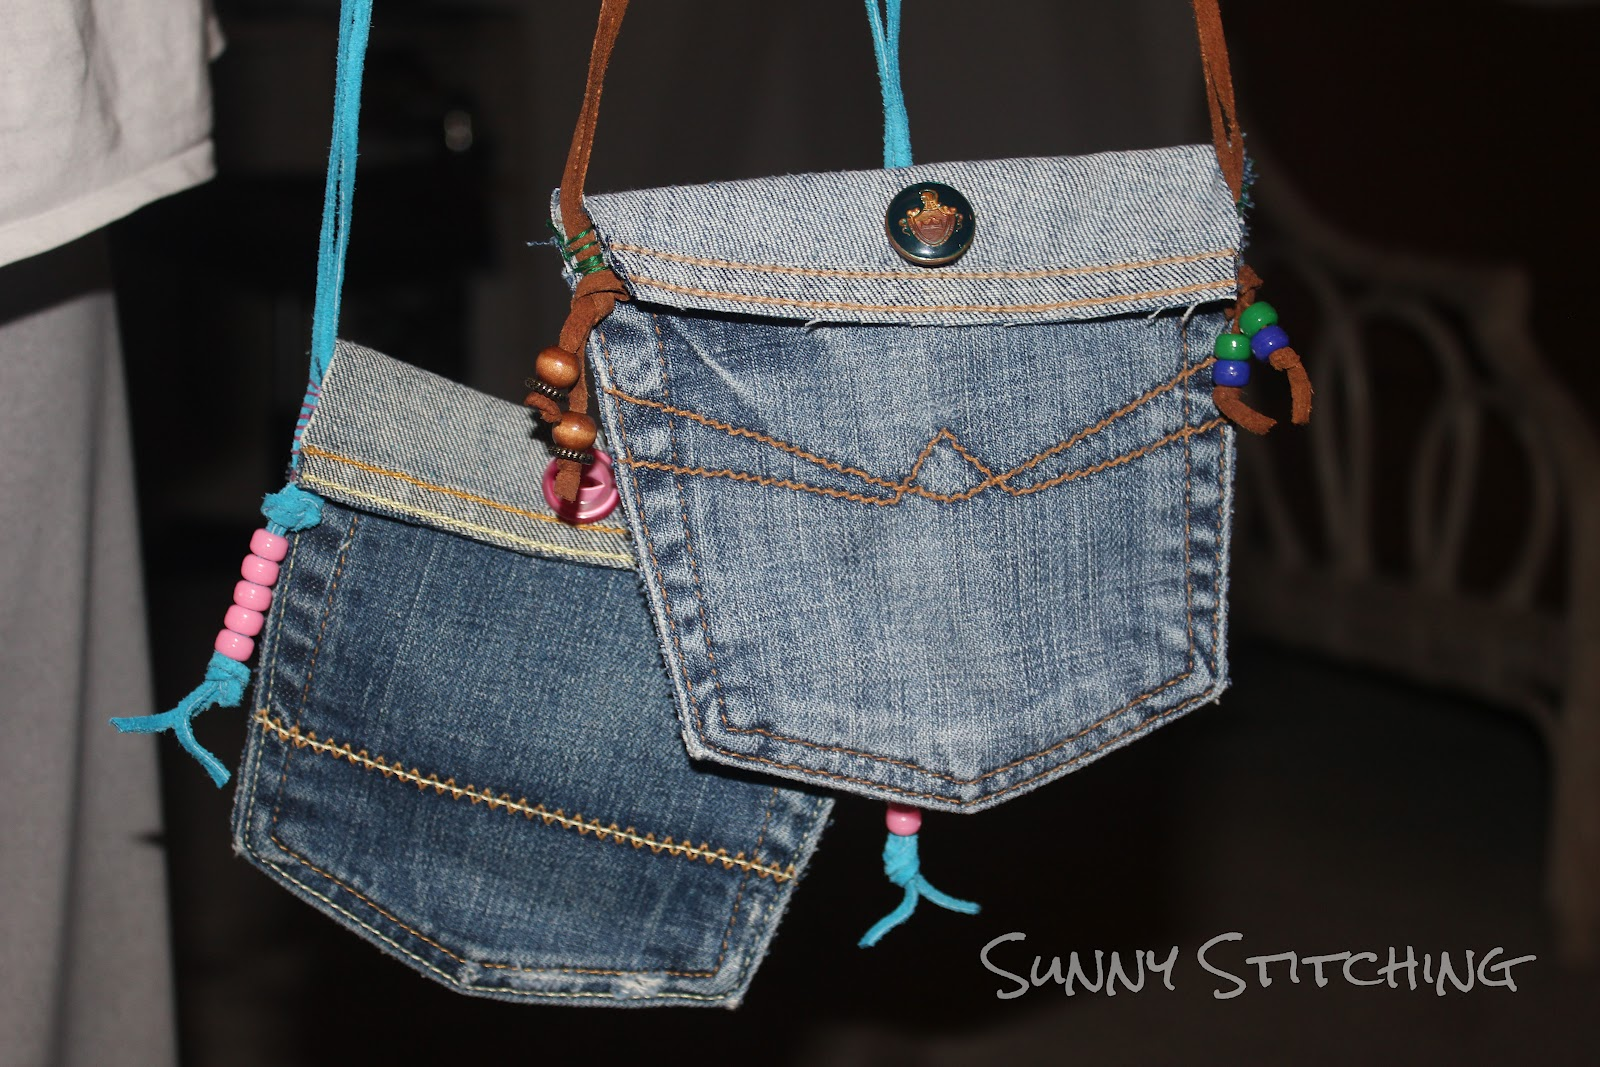 Sunny Stitching: Jean Pocket Purse Tutorial